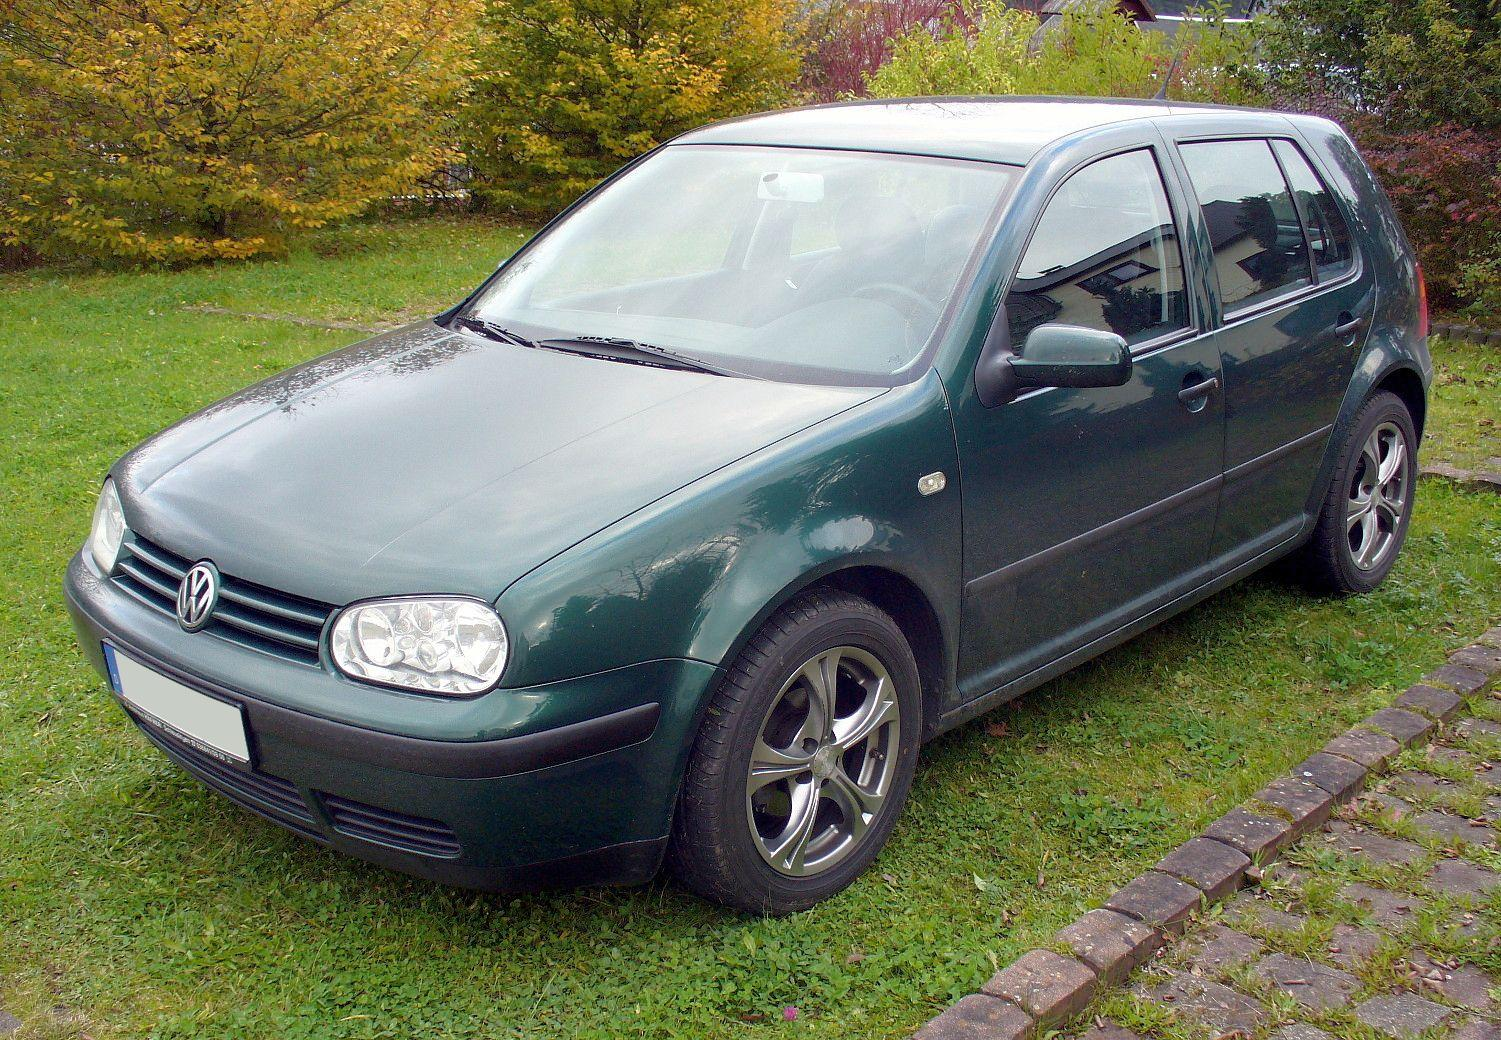 file vw golf iv 1 6 jpg